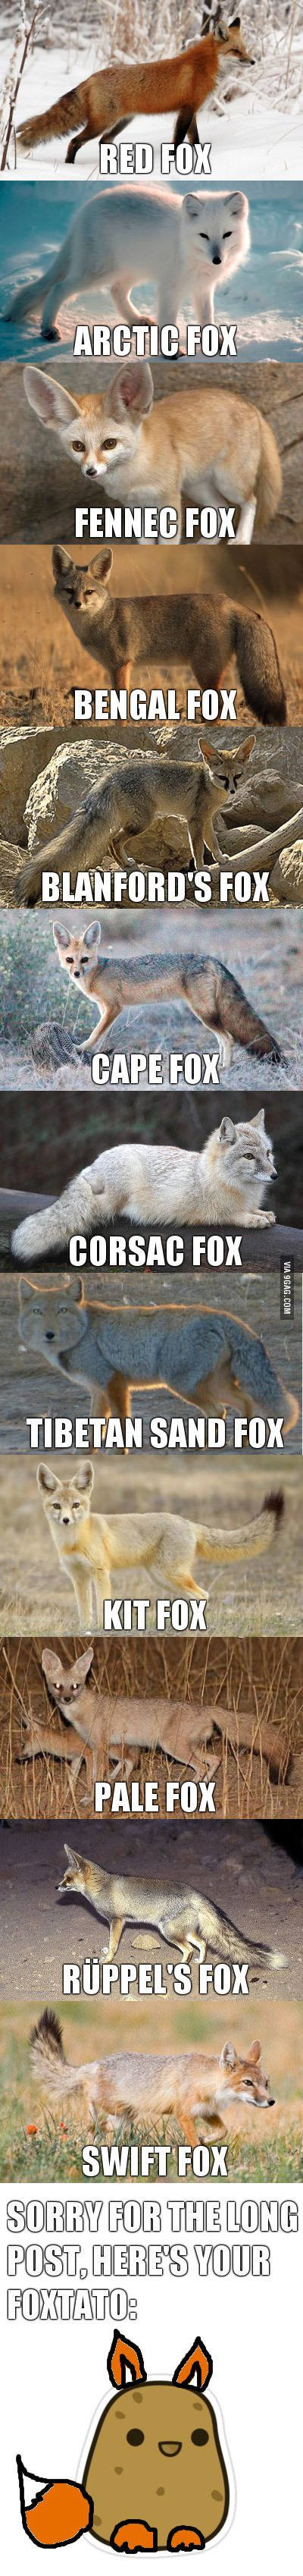 After all those posts about cates and doges it's time for one about foxes - and all I know about is the red fox